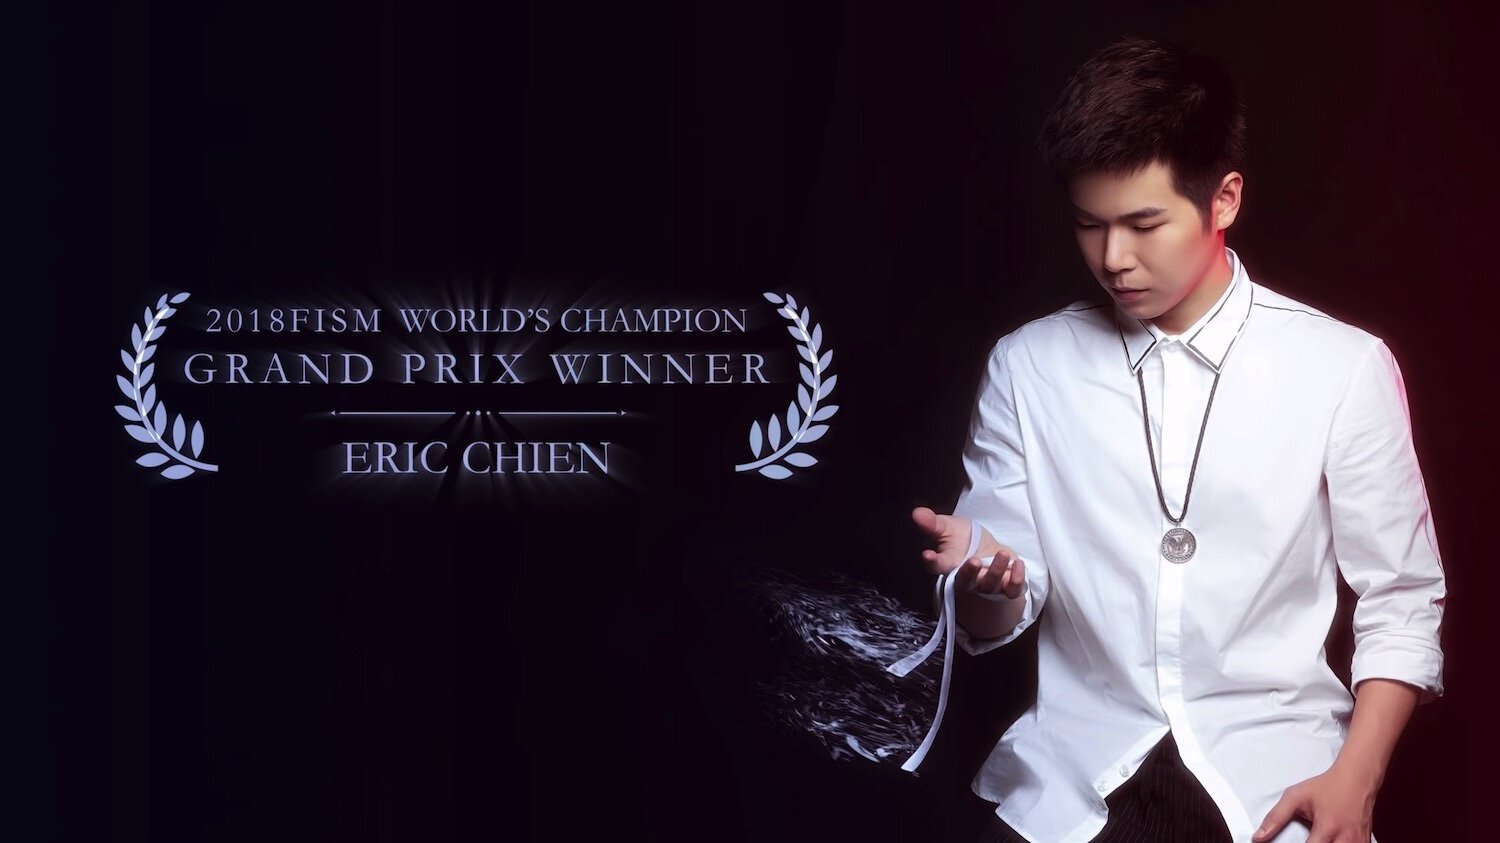 Eric Chien 2018 Fism Grand Prix Act Ribbon 0 2 screenshot 1500x843